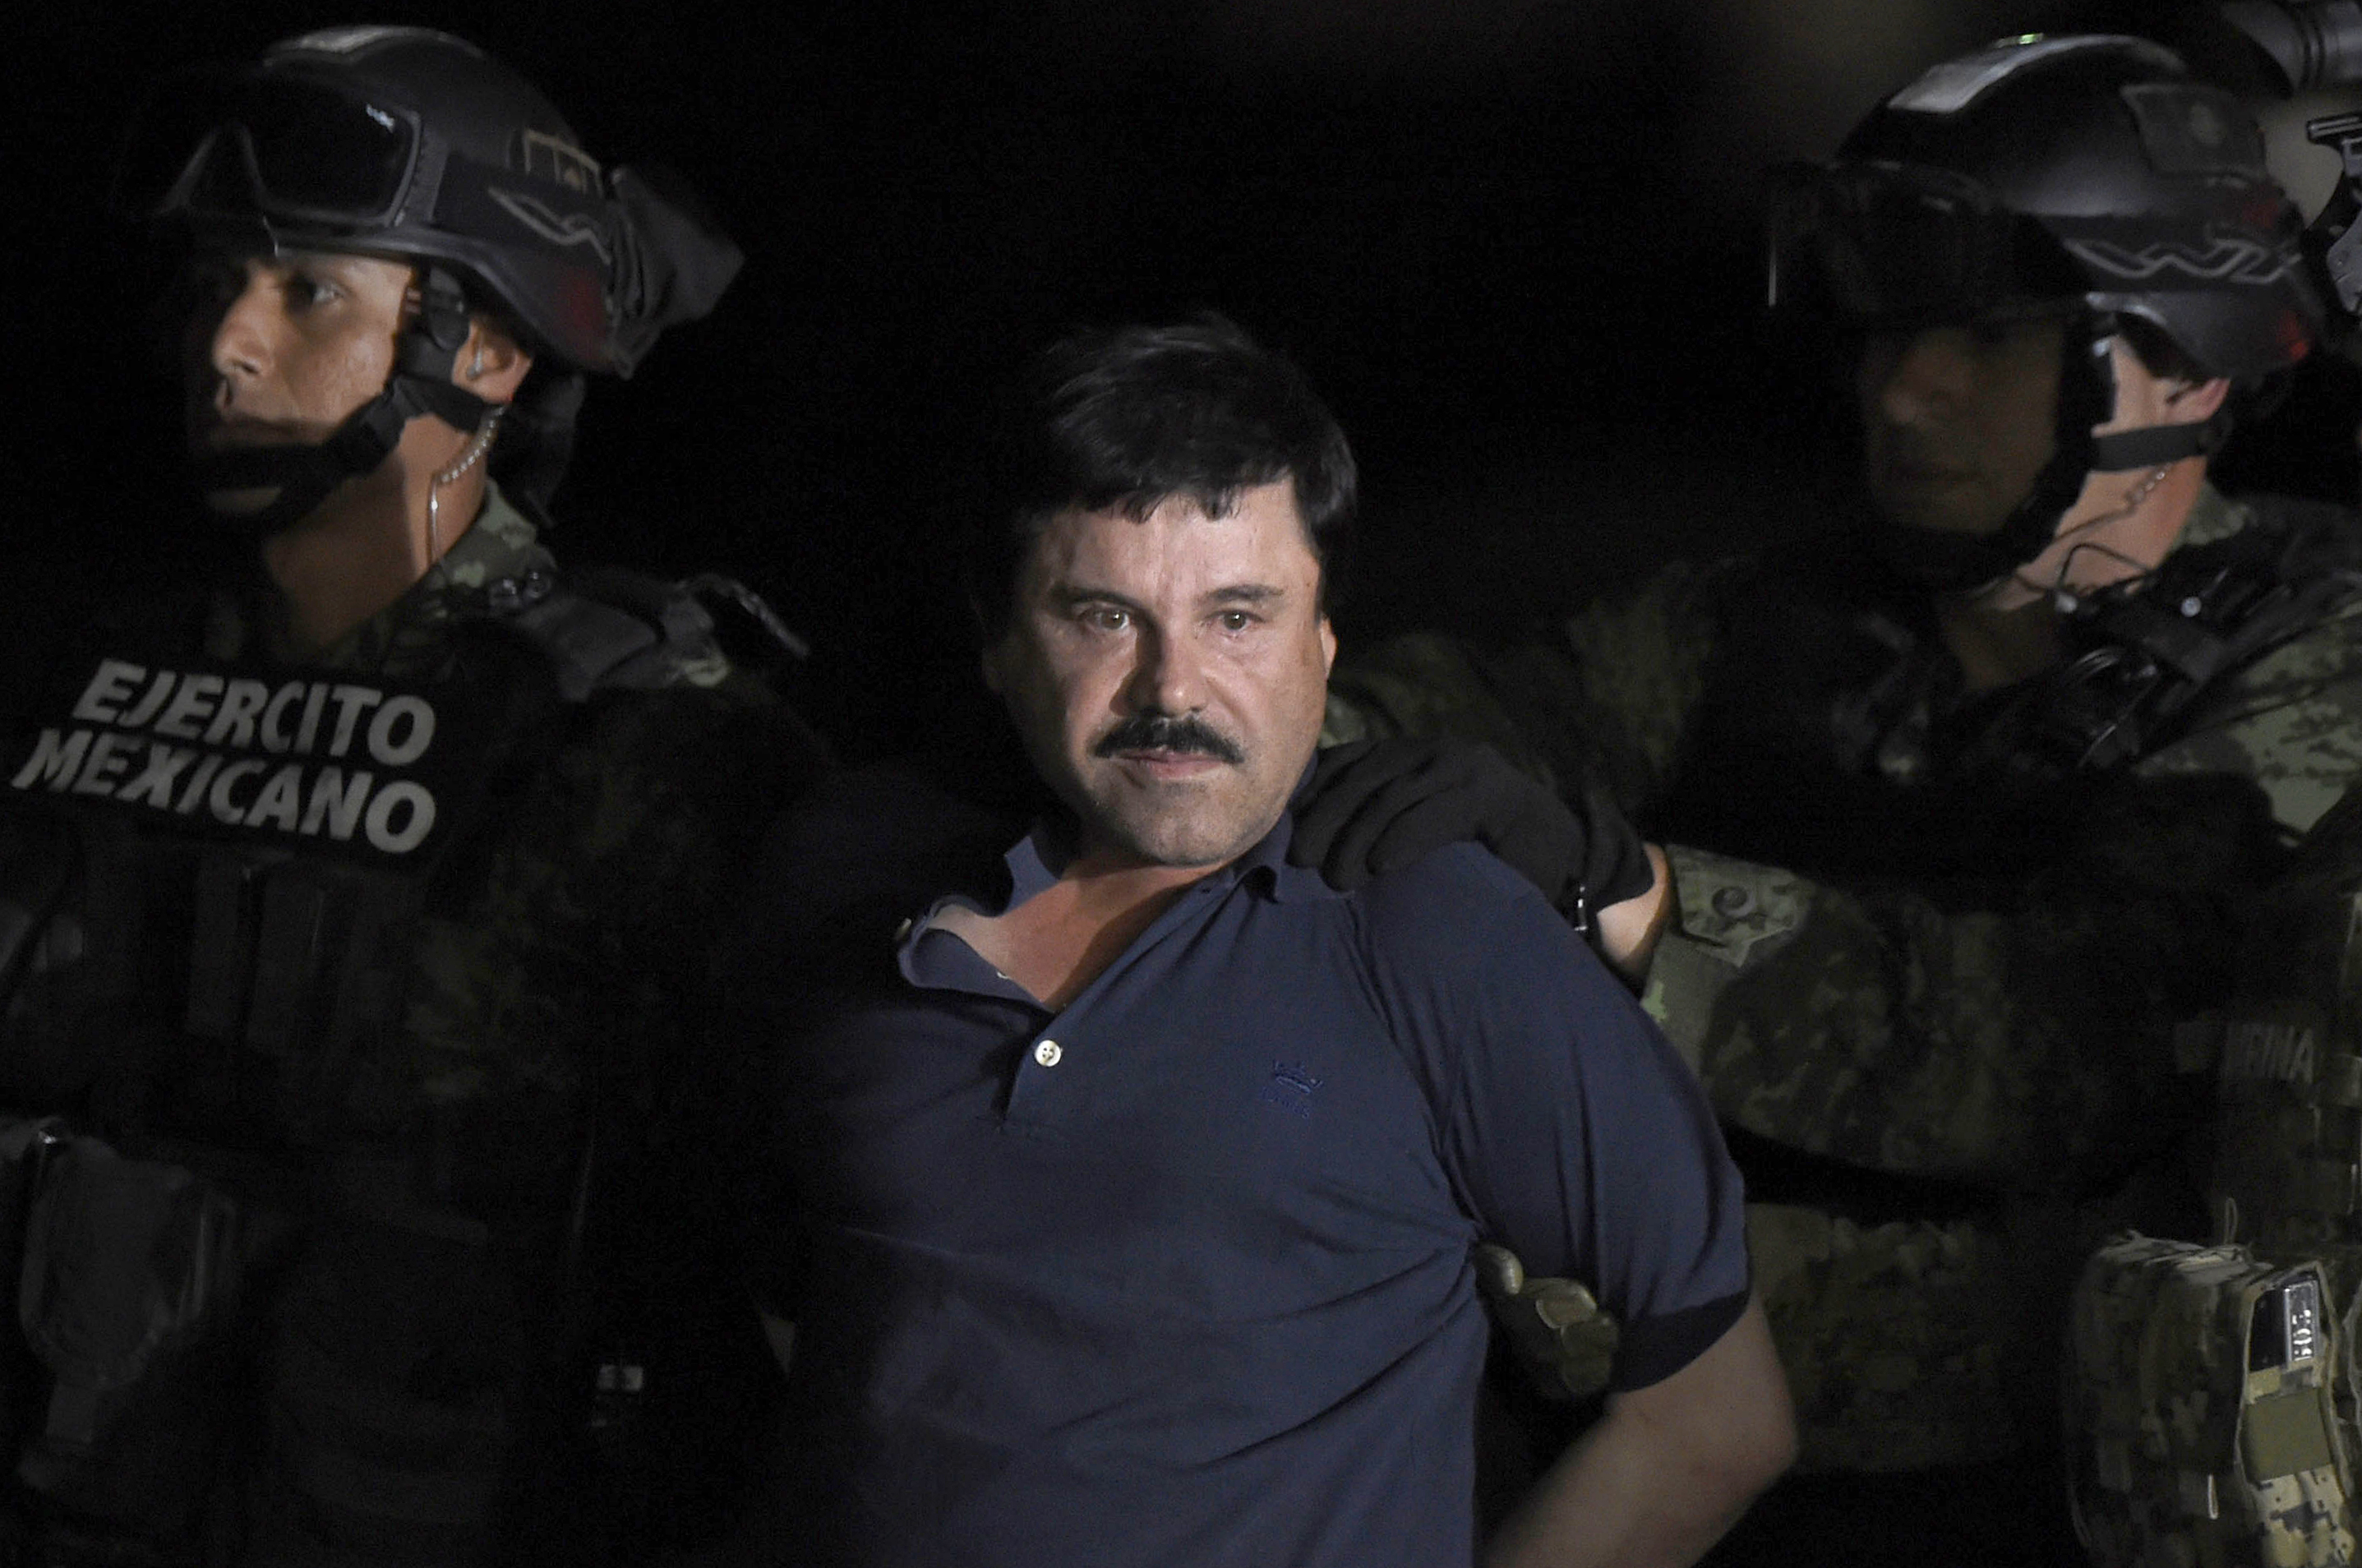 El Chapo found guilty of all counts at US trial